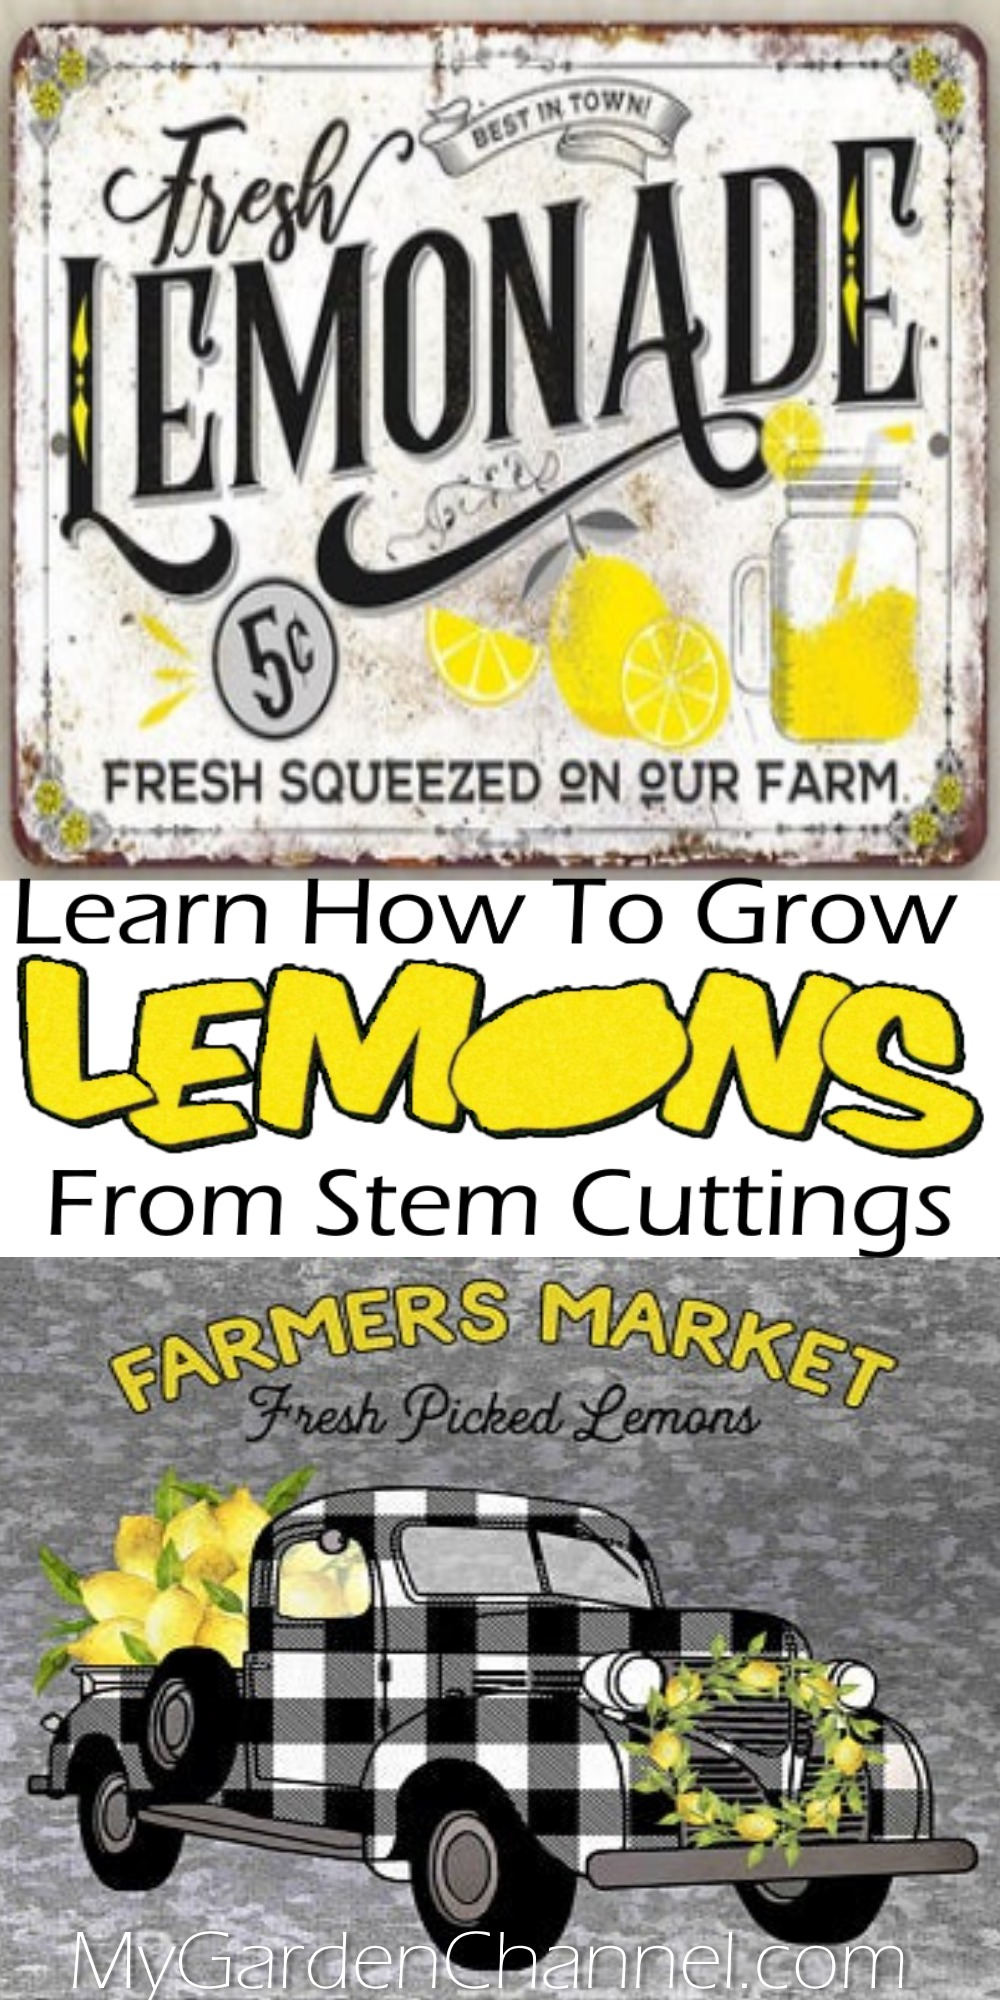 How To Grow Lemon Trees From Stem Cuttings